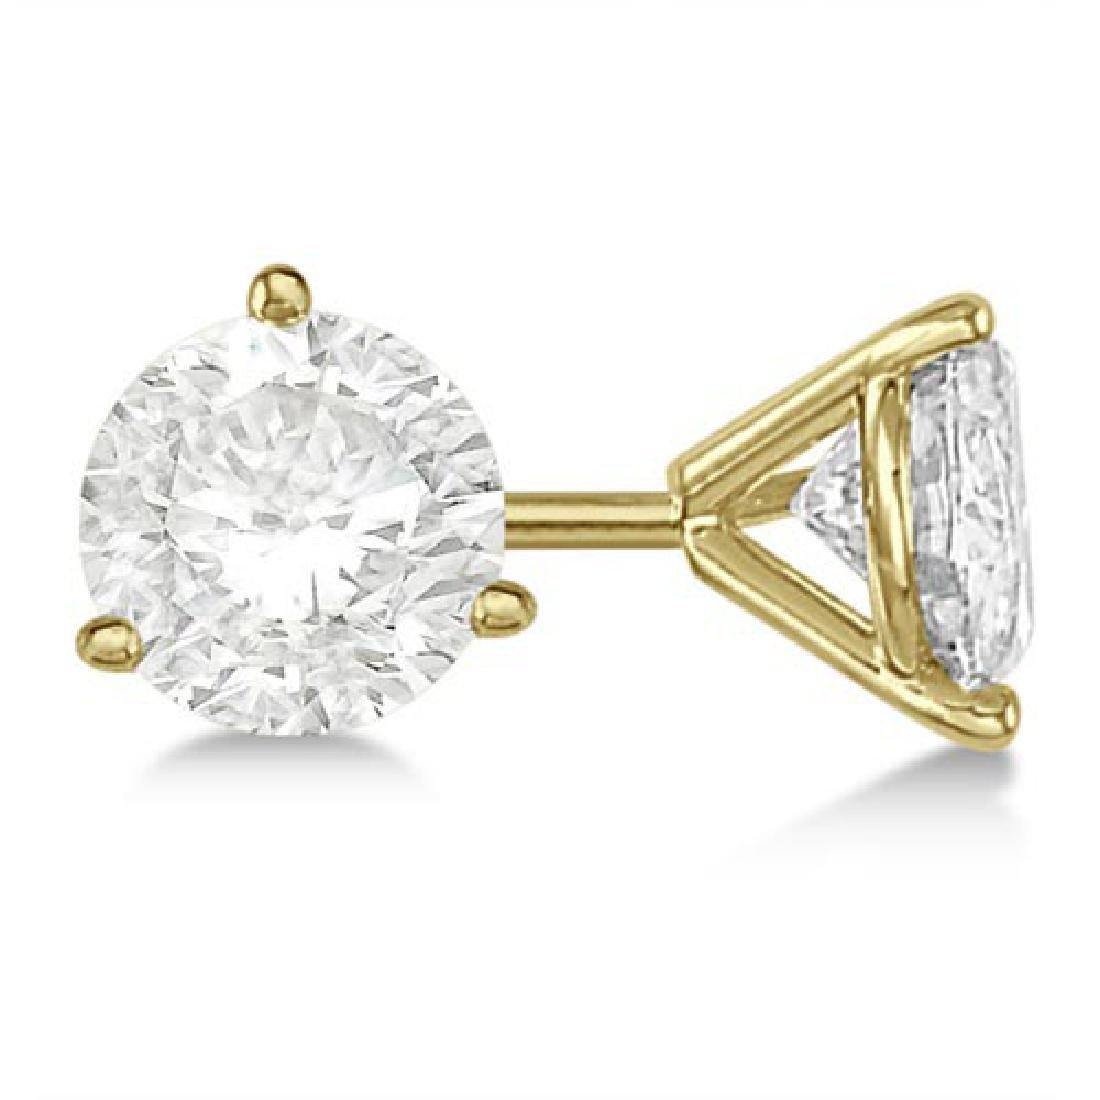 2.00ct. 3-Prong Martini Diamond Stud Earrings 18kt Yell